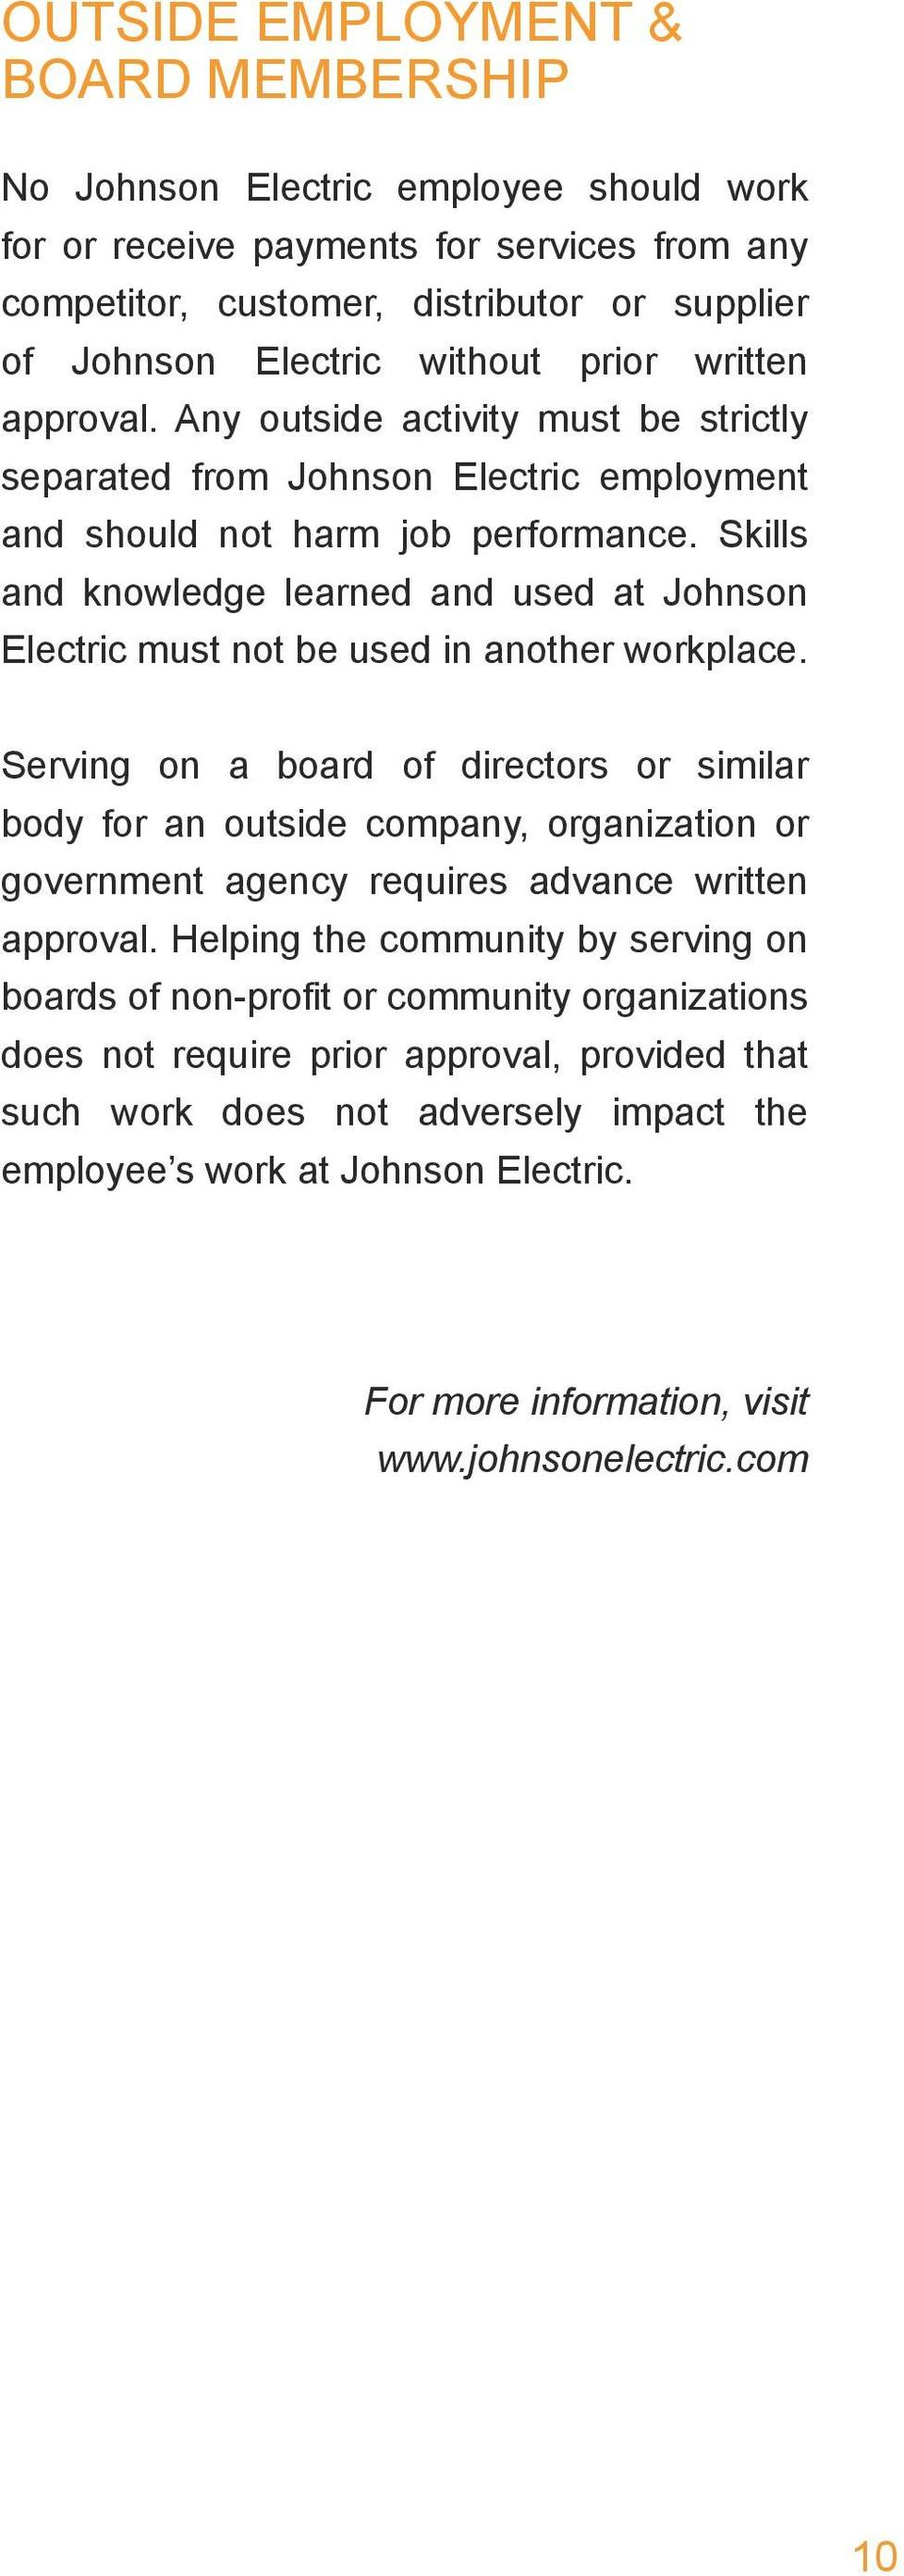 Skills and knowledge learned and used at Johnson Electric must not be used in another workplace.